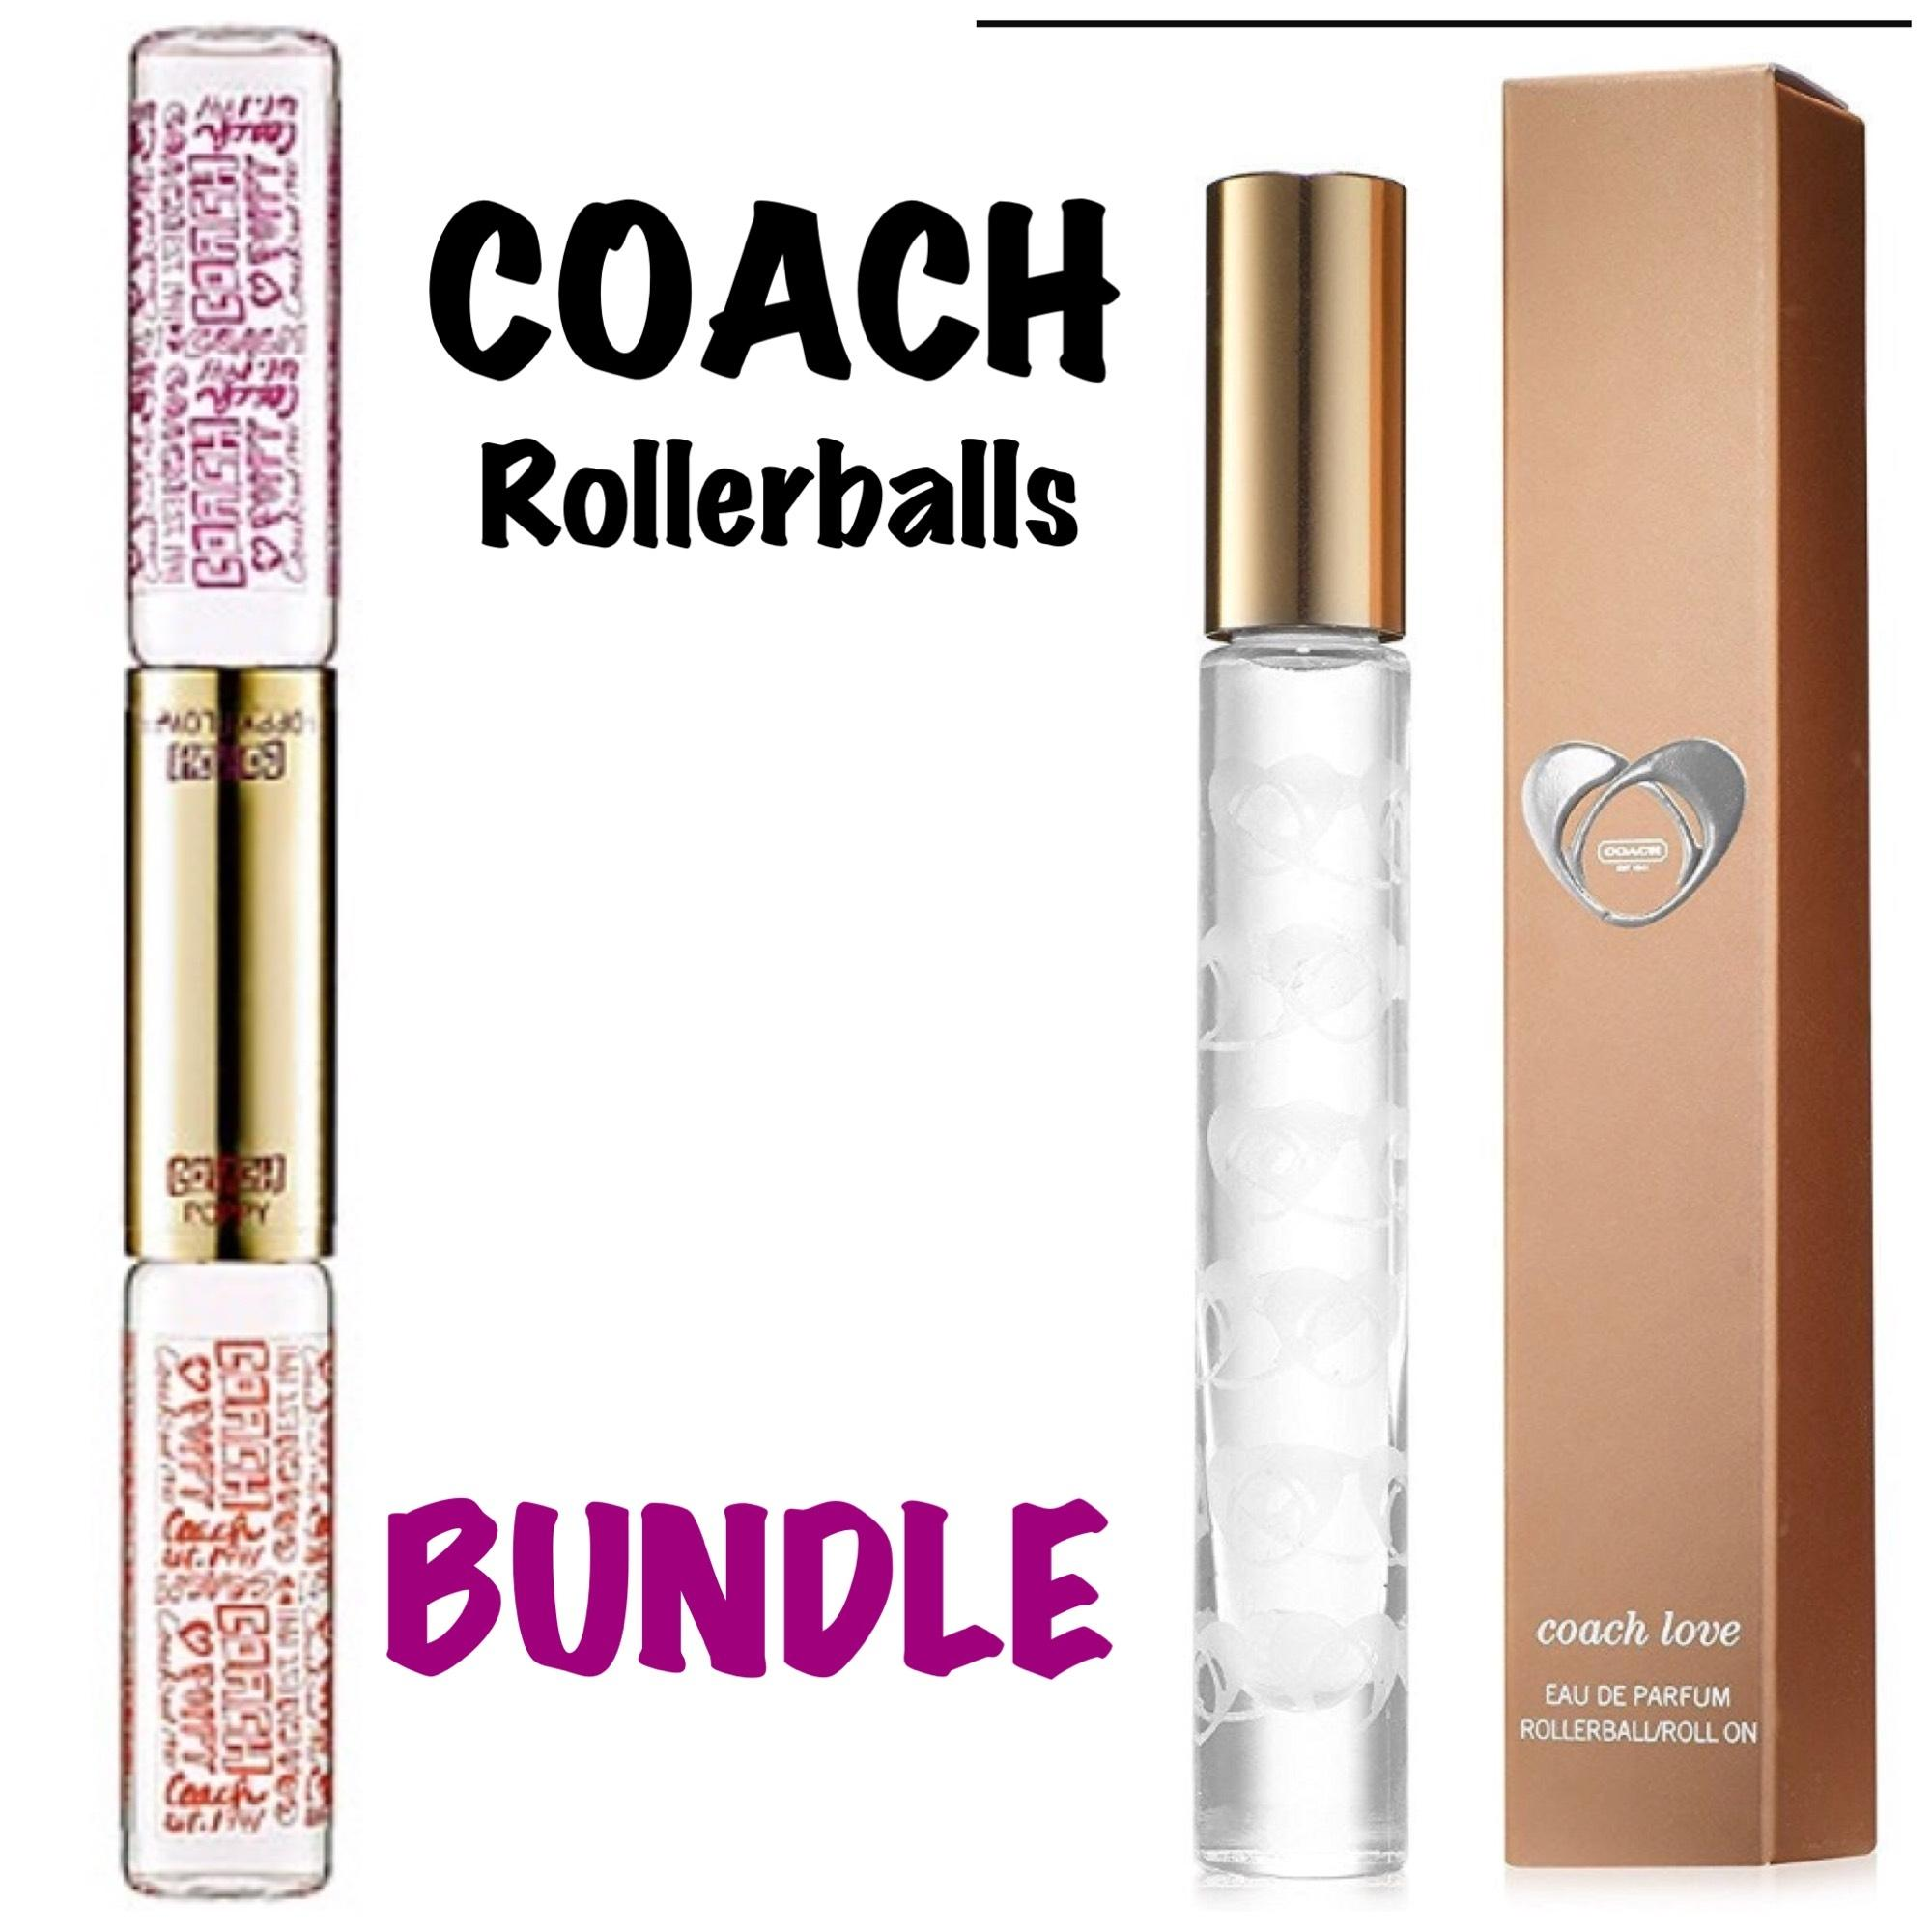 Coach Poppy Rollerball Homes